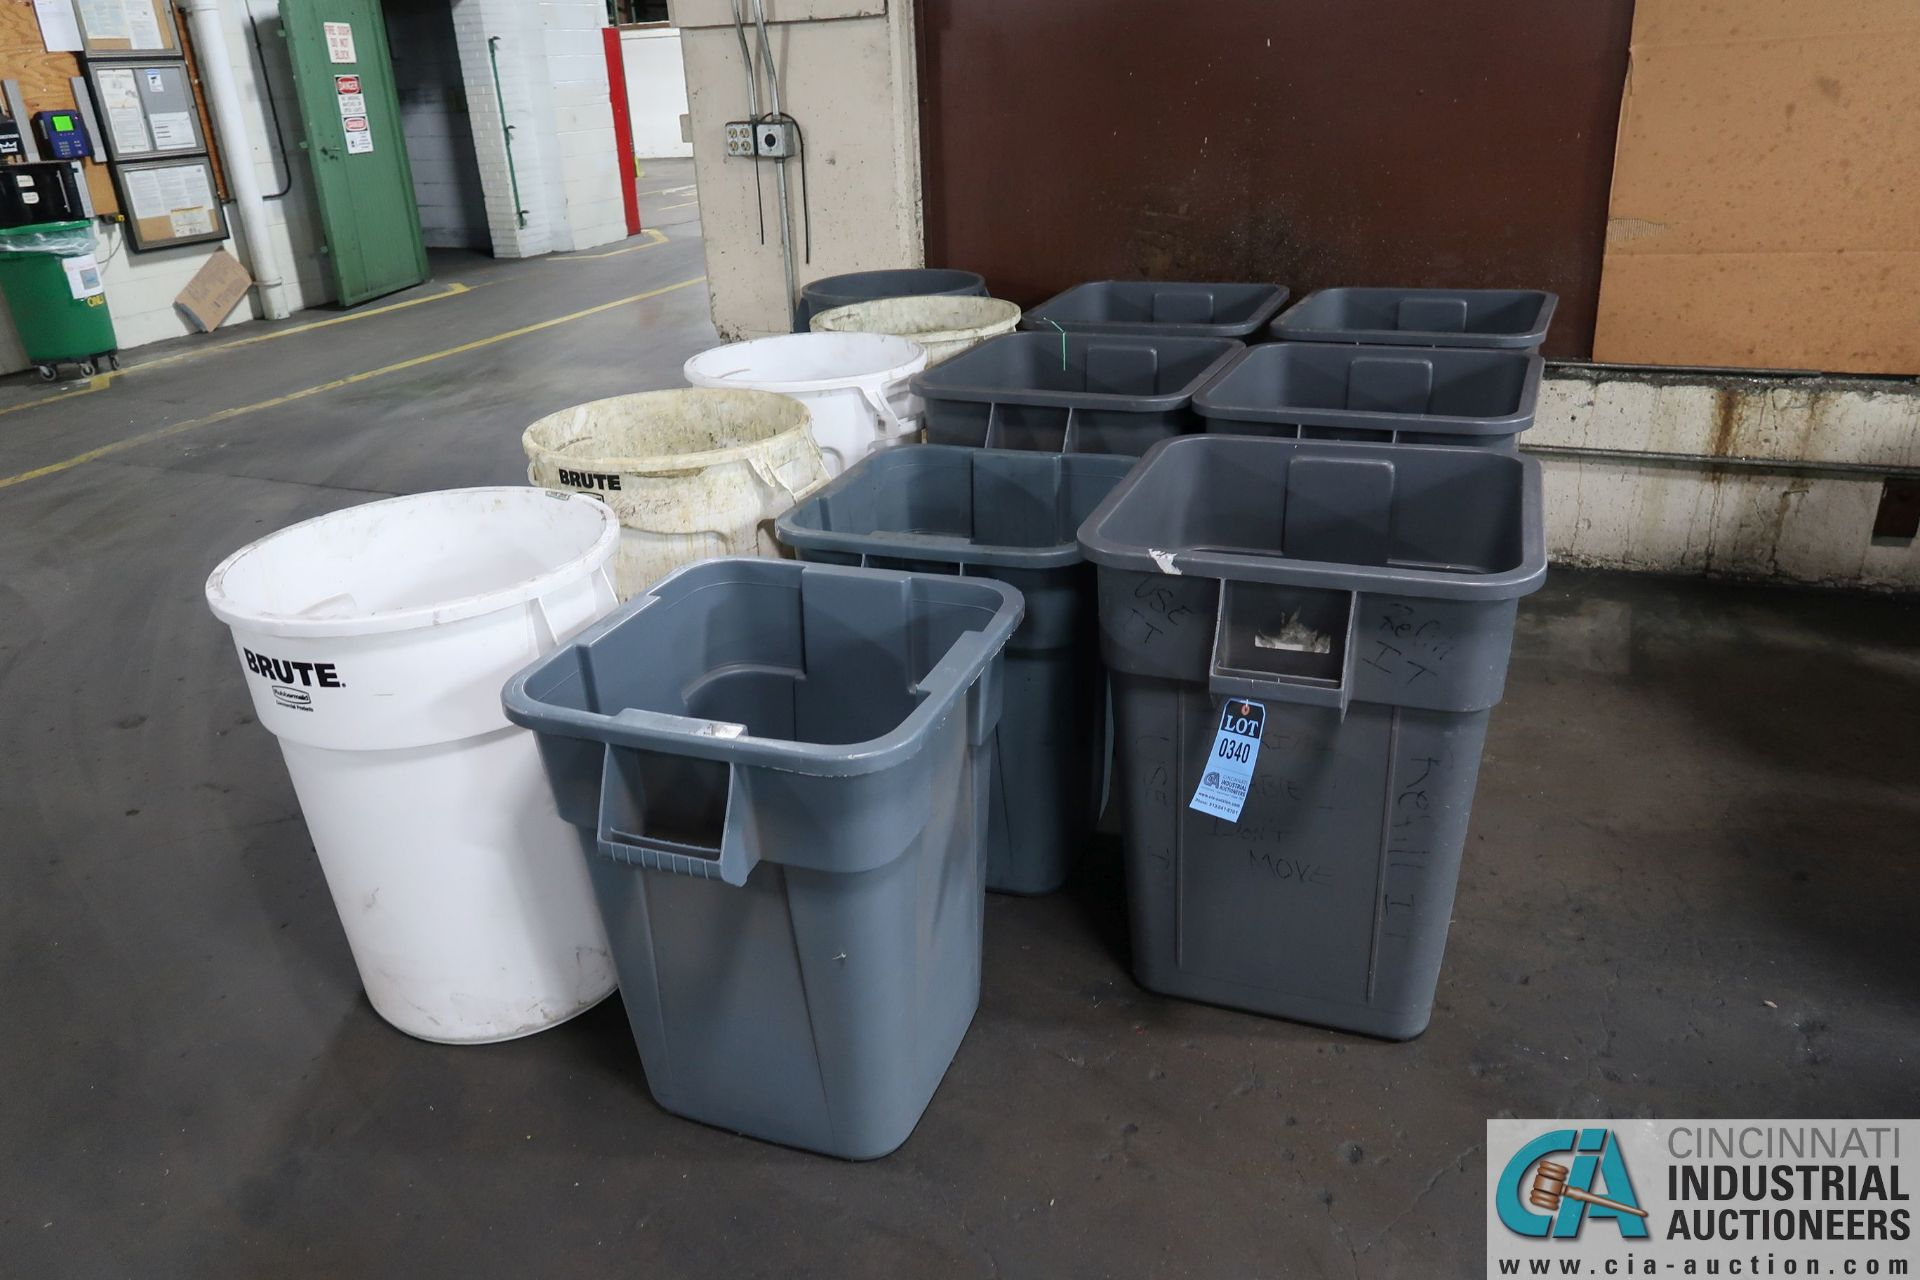 MISCELLANEOUS SQUARE AND ROUND PLASTIC TRASH CANS